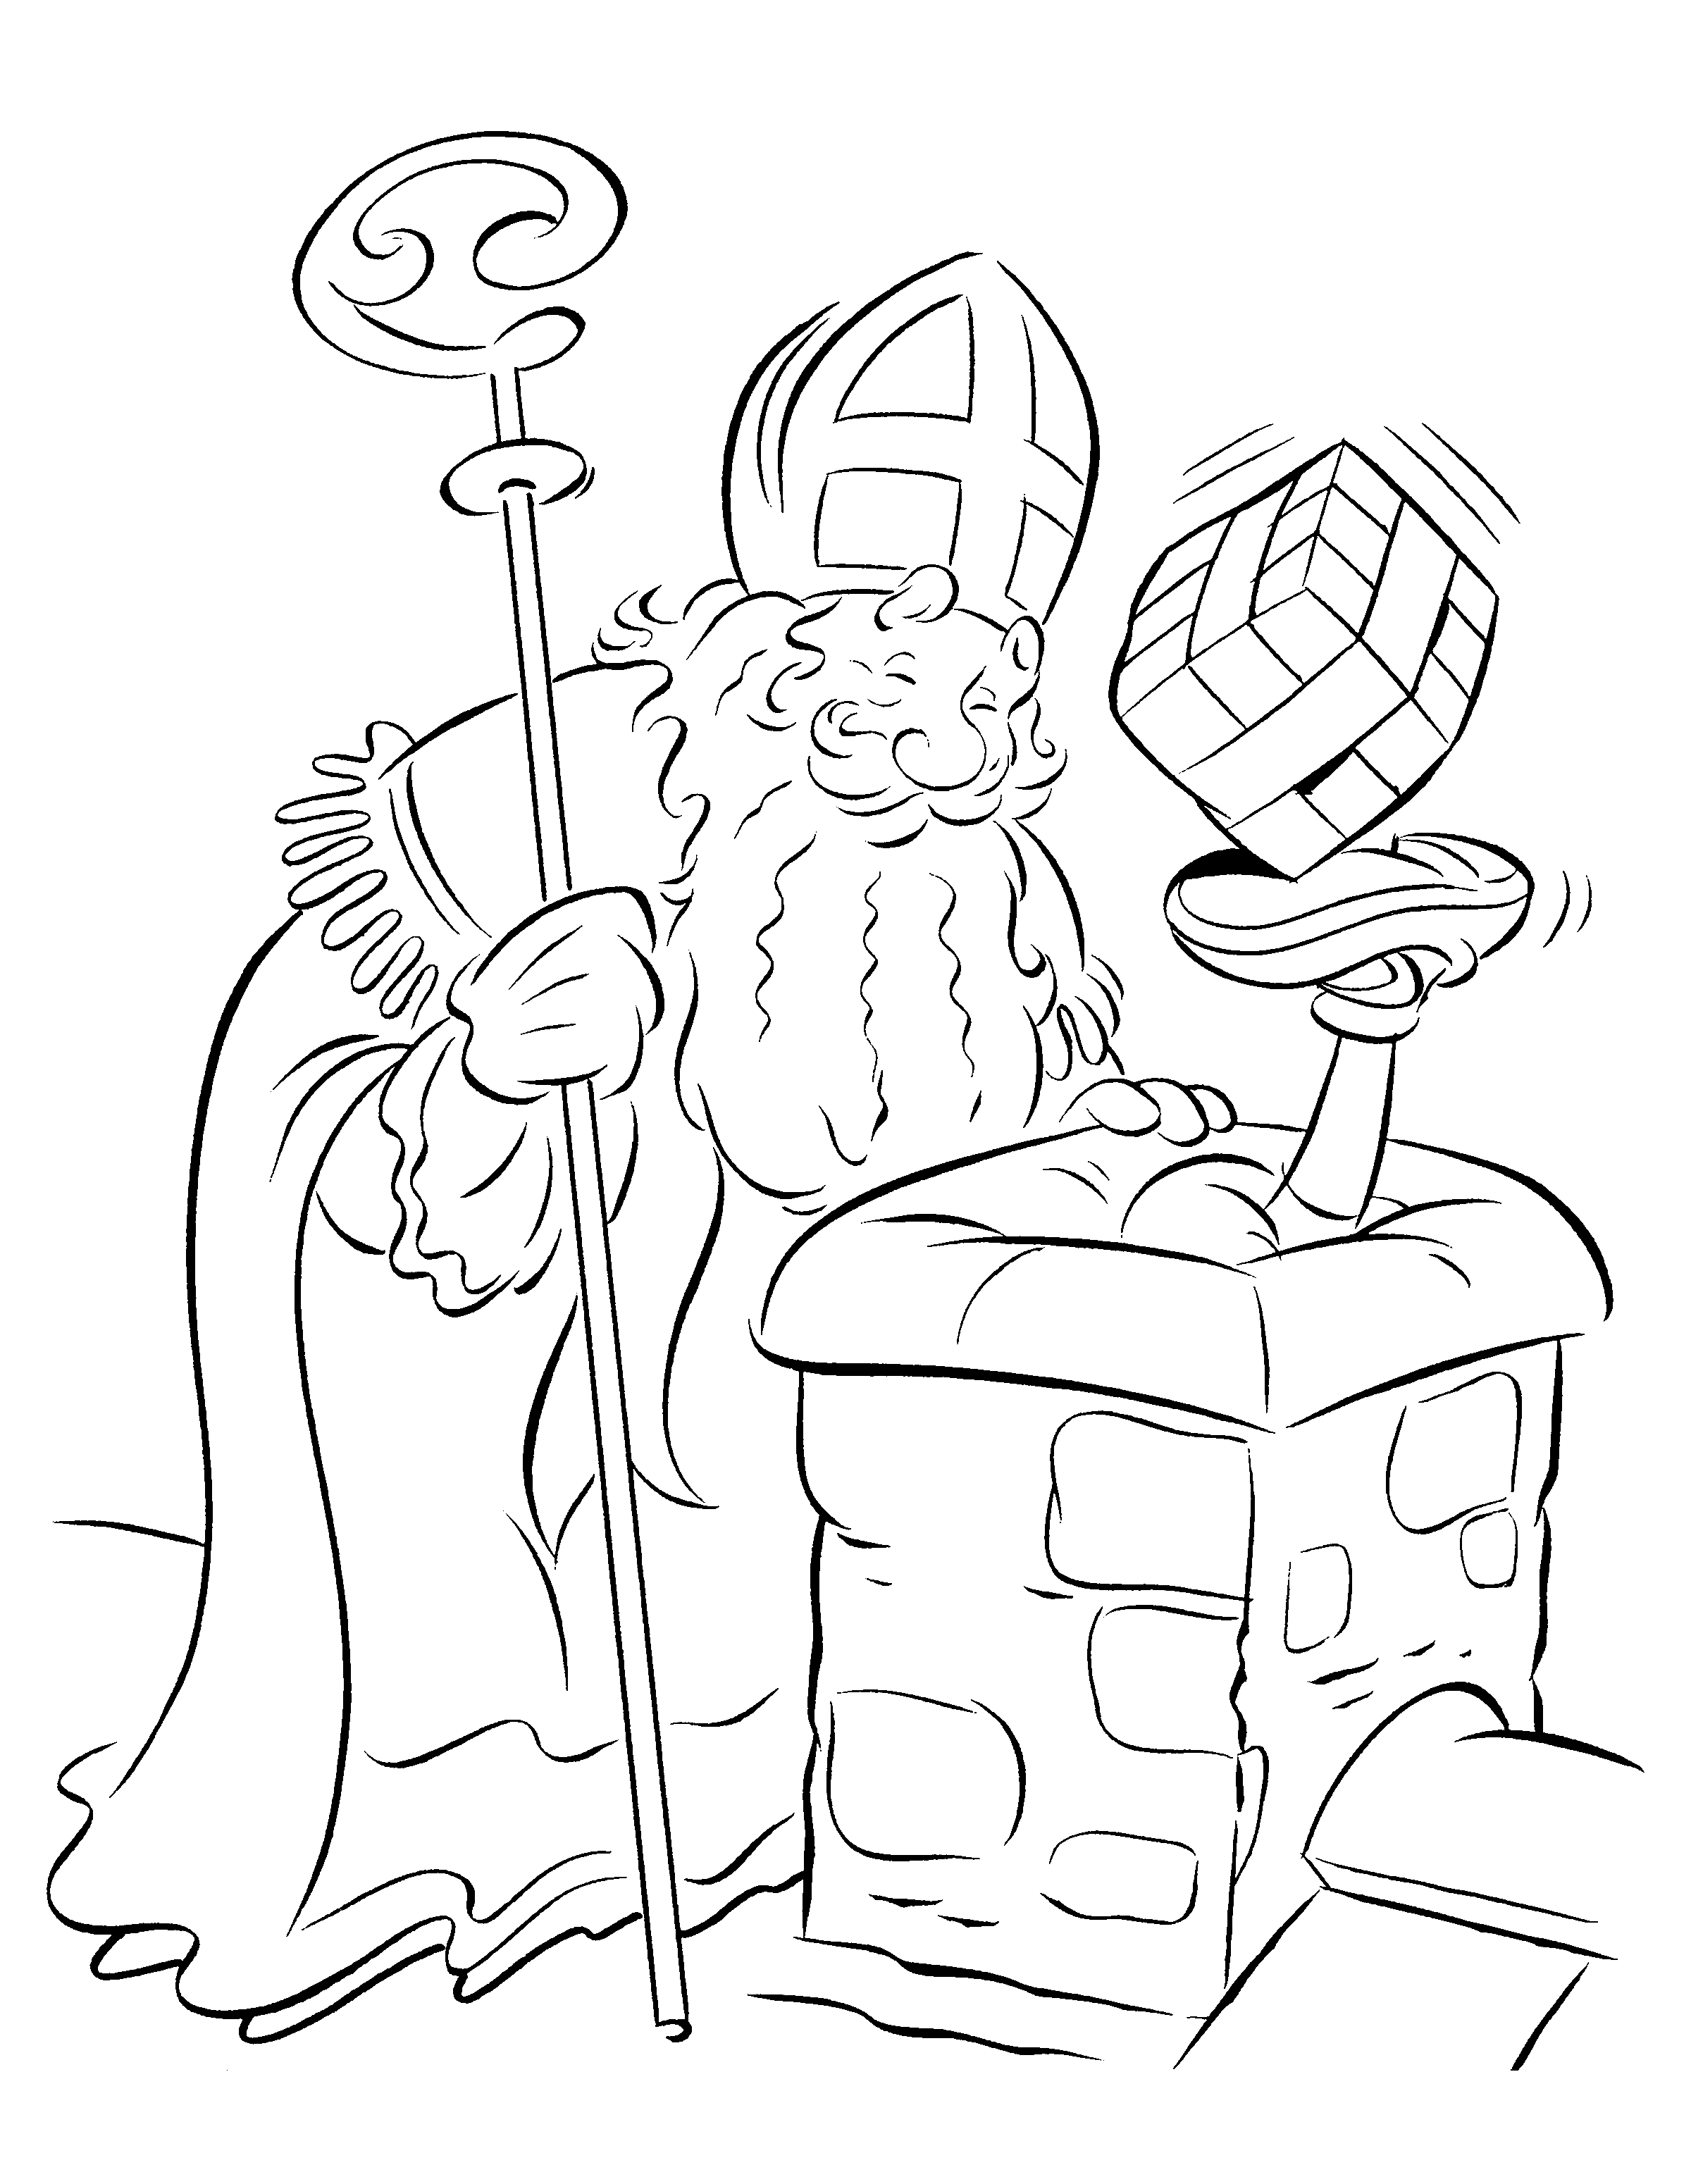 sinterklaas coloring pages - photo#6